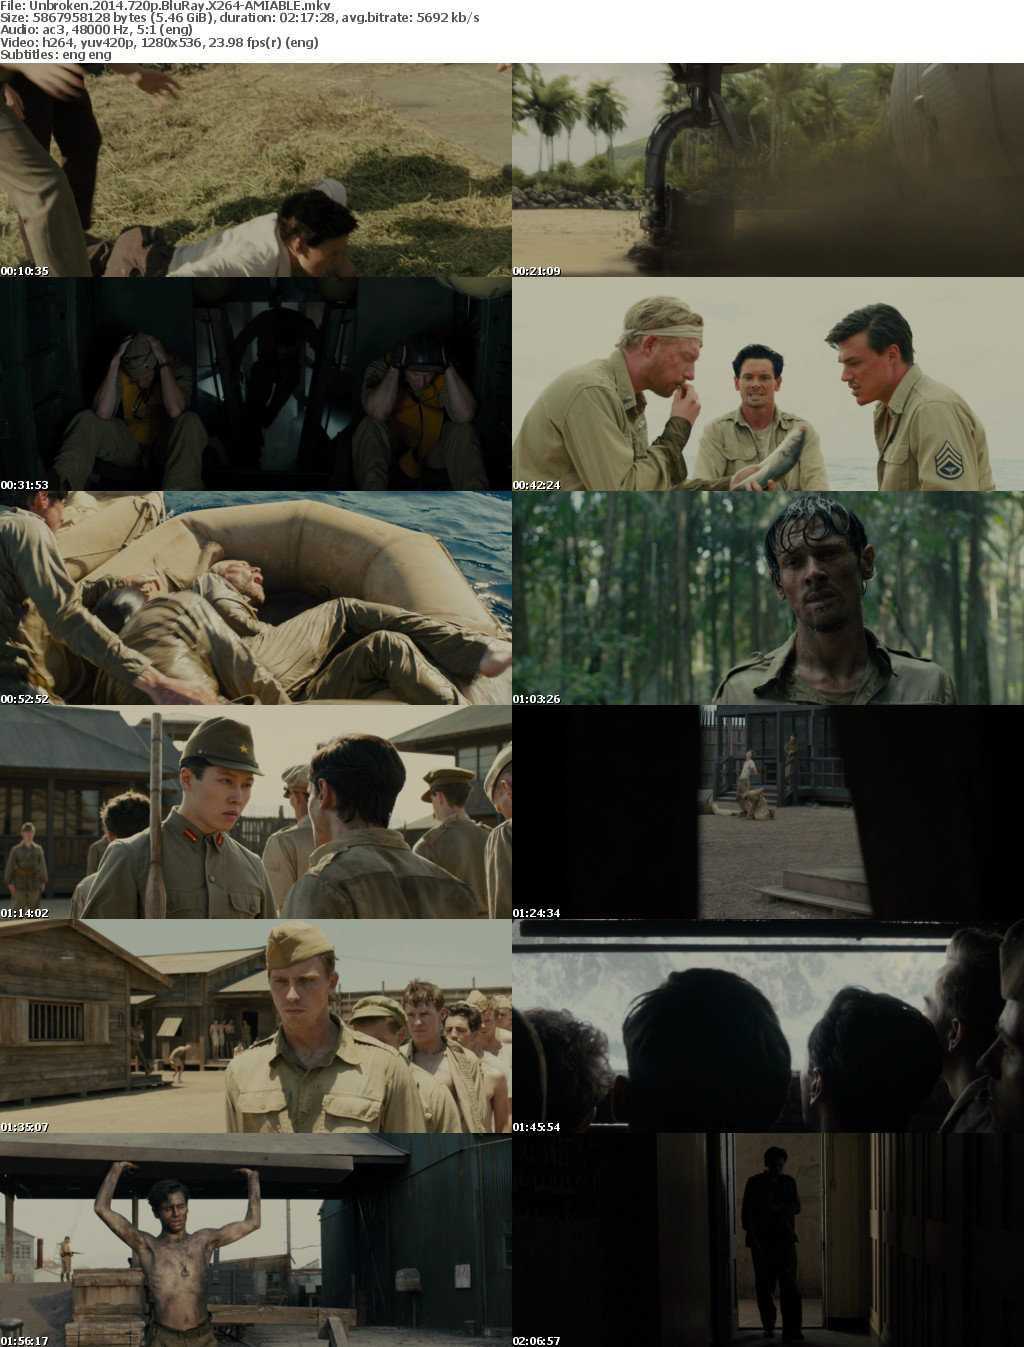 Unbroken (2014) 720p BluRay X264